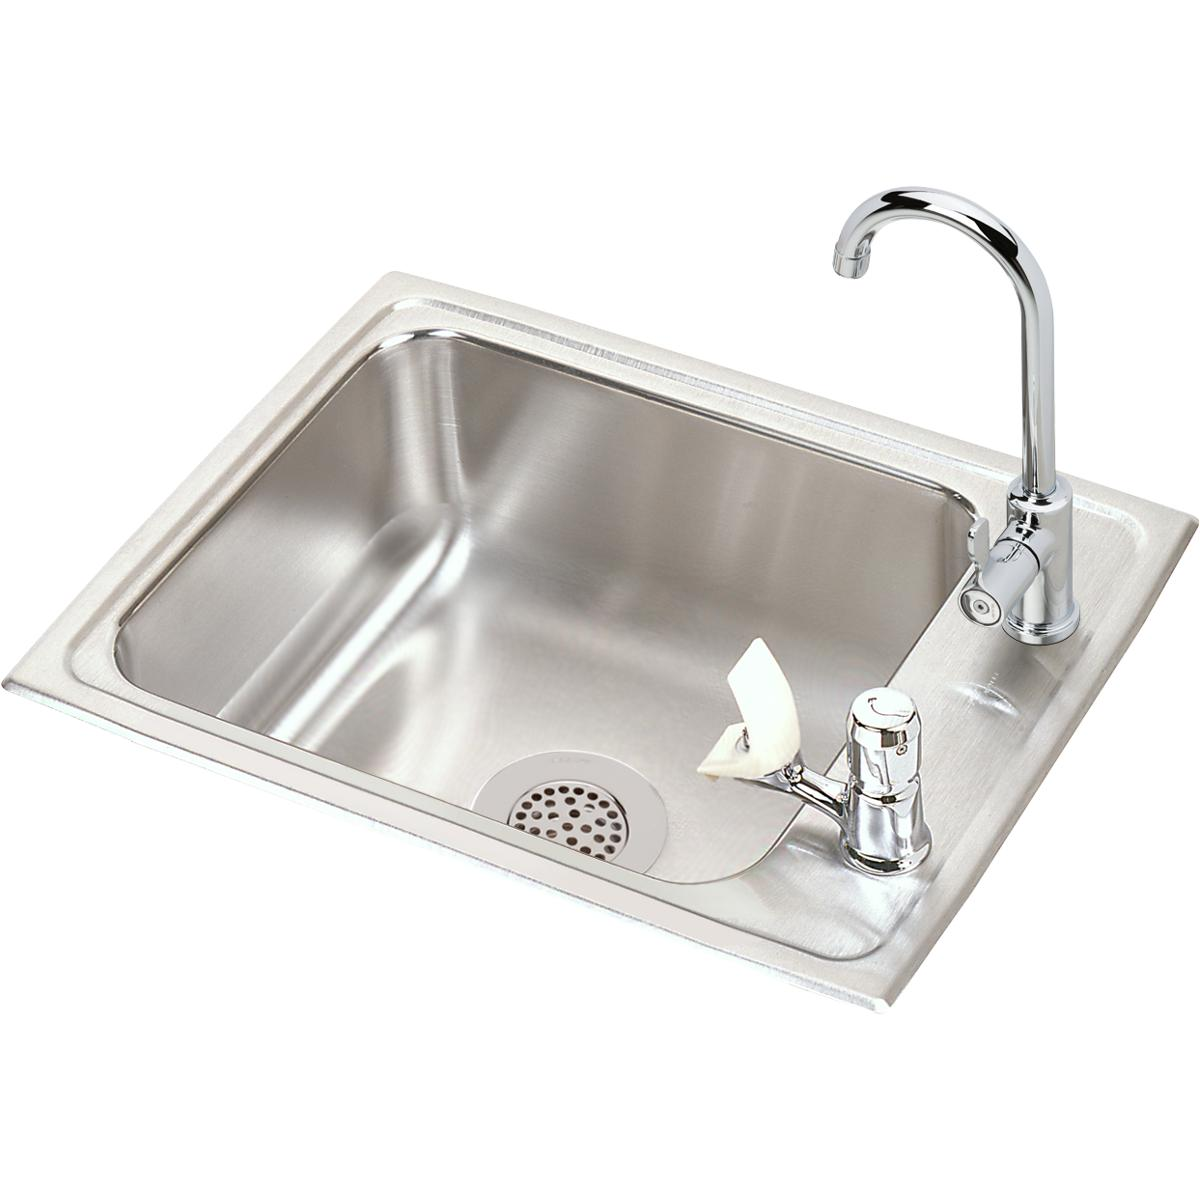 "Elkay Lustertone Classic Stainless Steel 22"" x 17"" x 7-5/8"", Single Drop-in Classroom Sink + Faucet/Bubbler Kit"